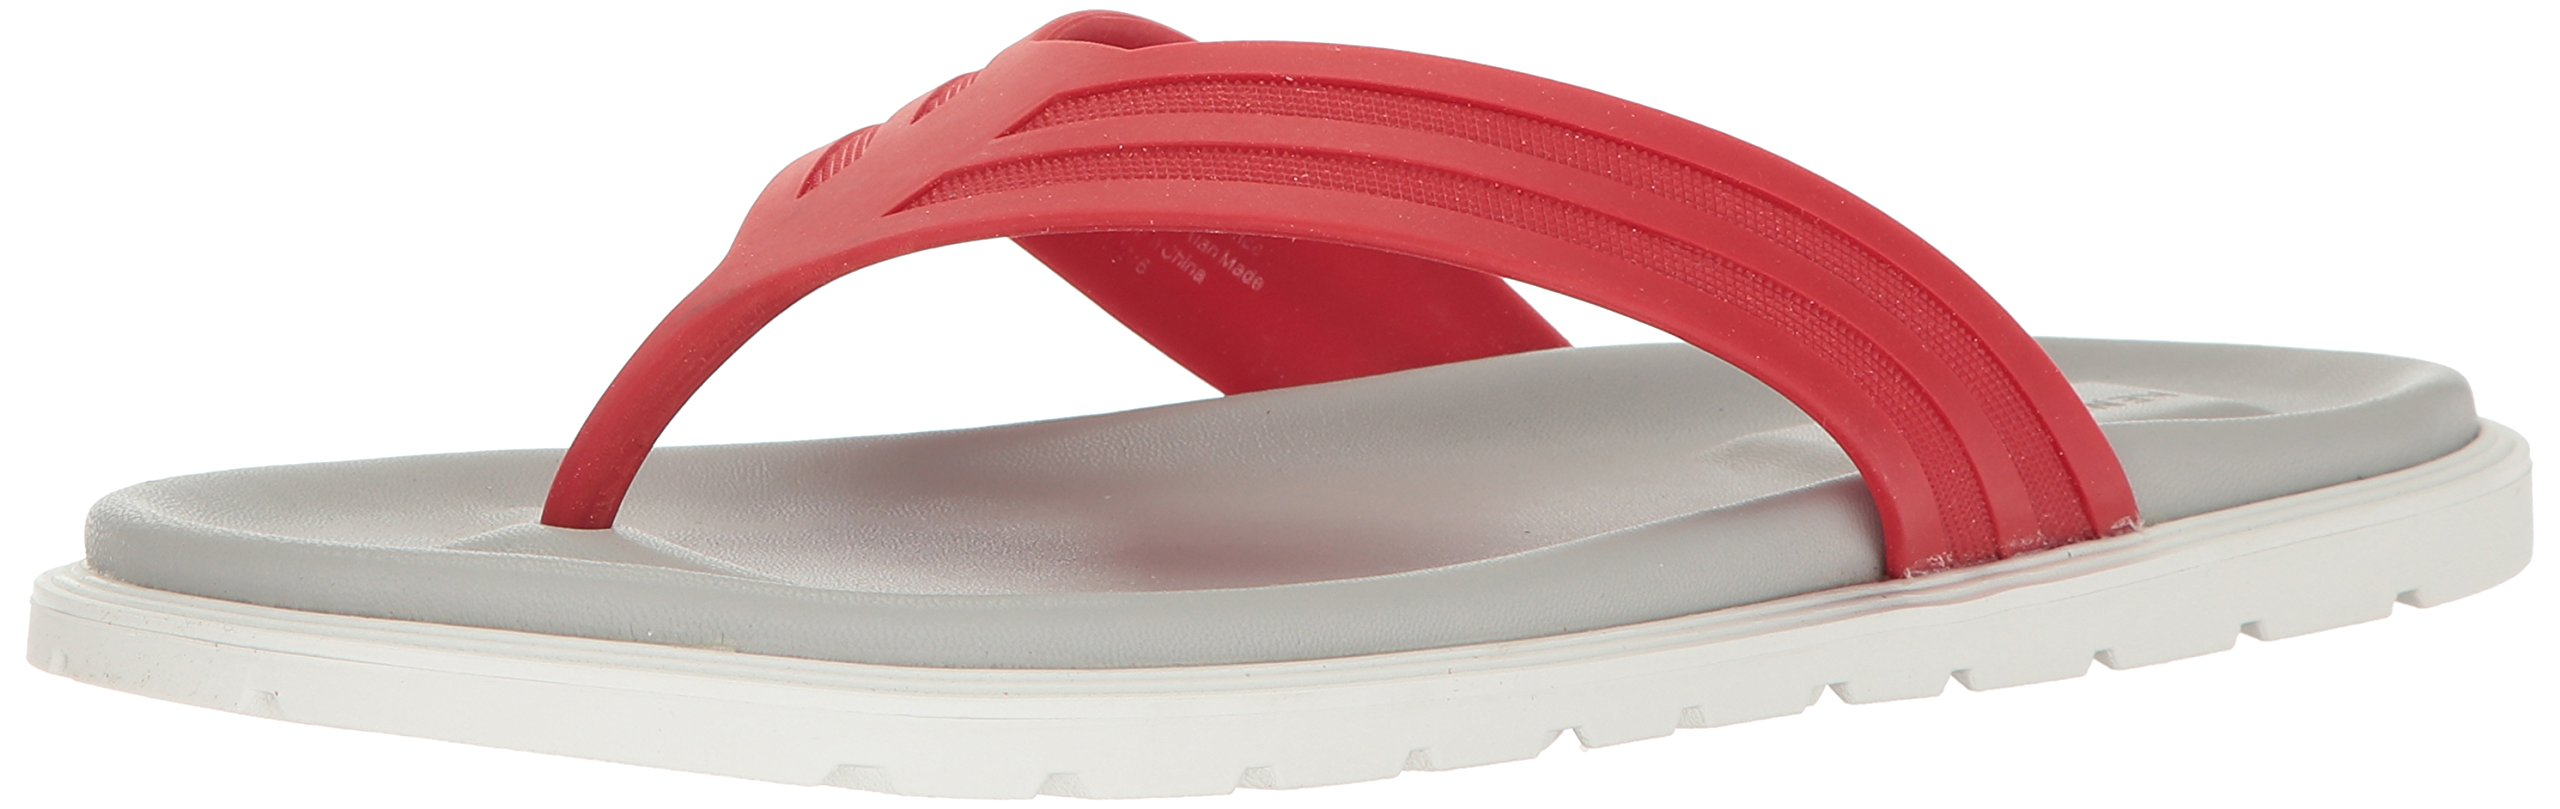 Kenneth Cole New York Men's Catch a Glimpse Flip Flop, Red, 11 M US